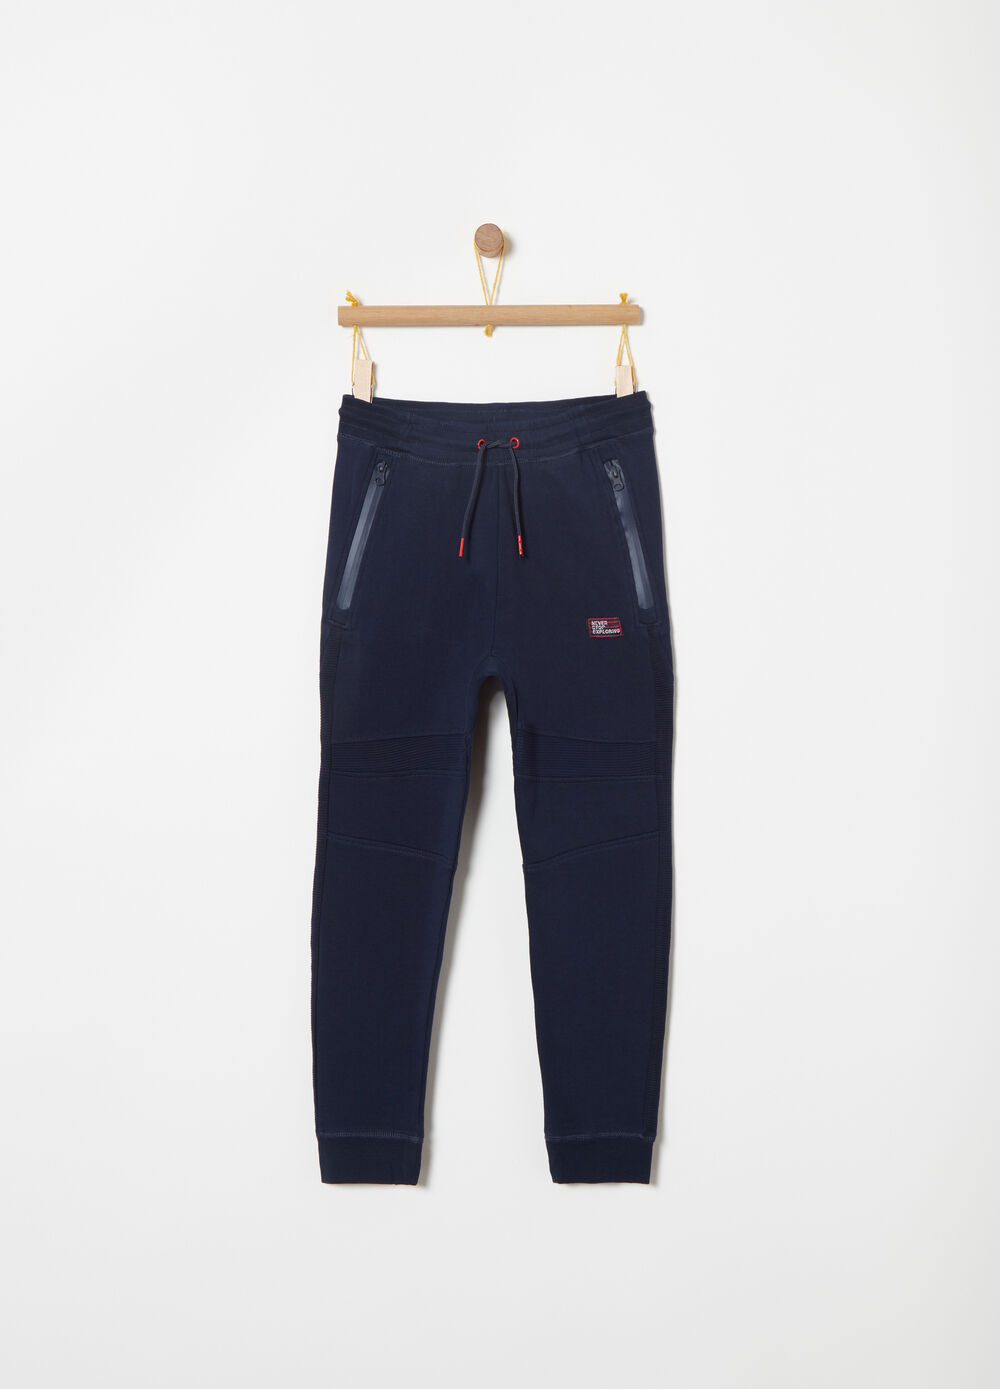 Heavy fleece trousers with ottoman inserts